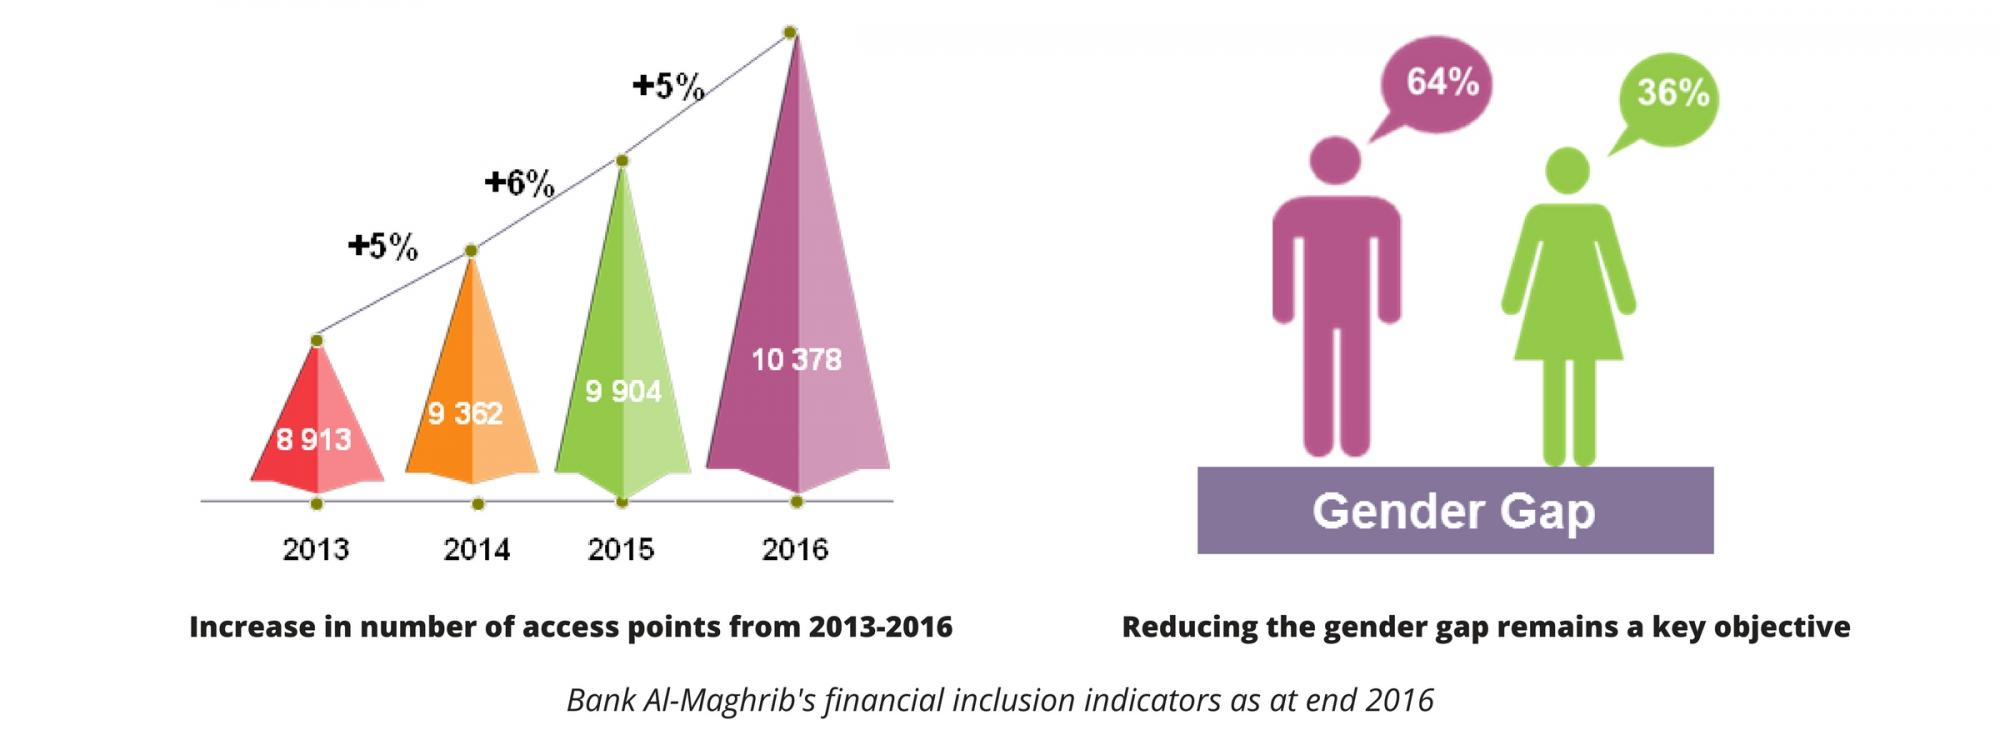 maghrib-access-points-gender-gap.jpg